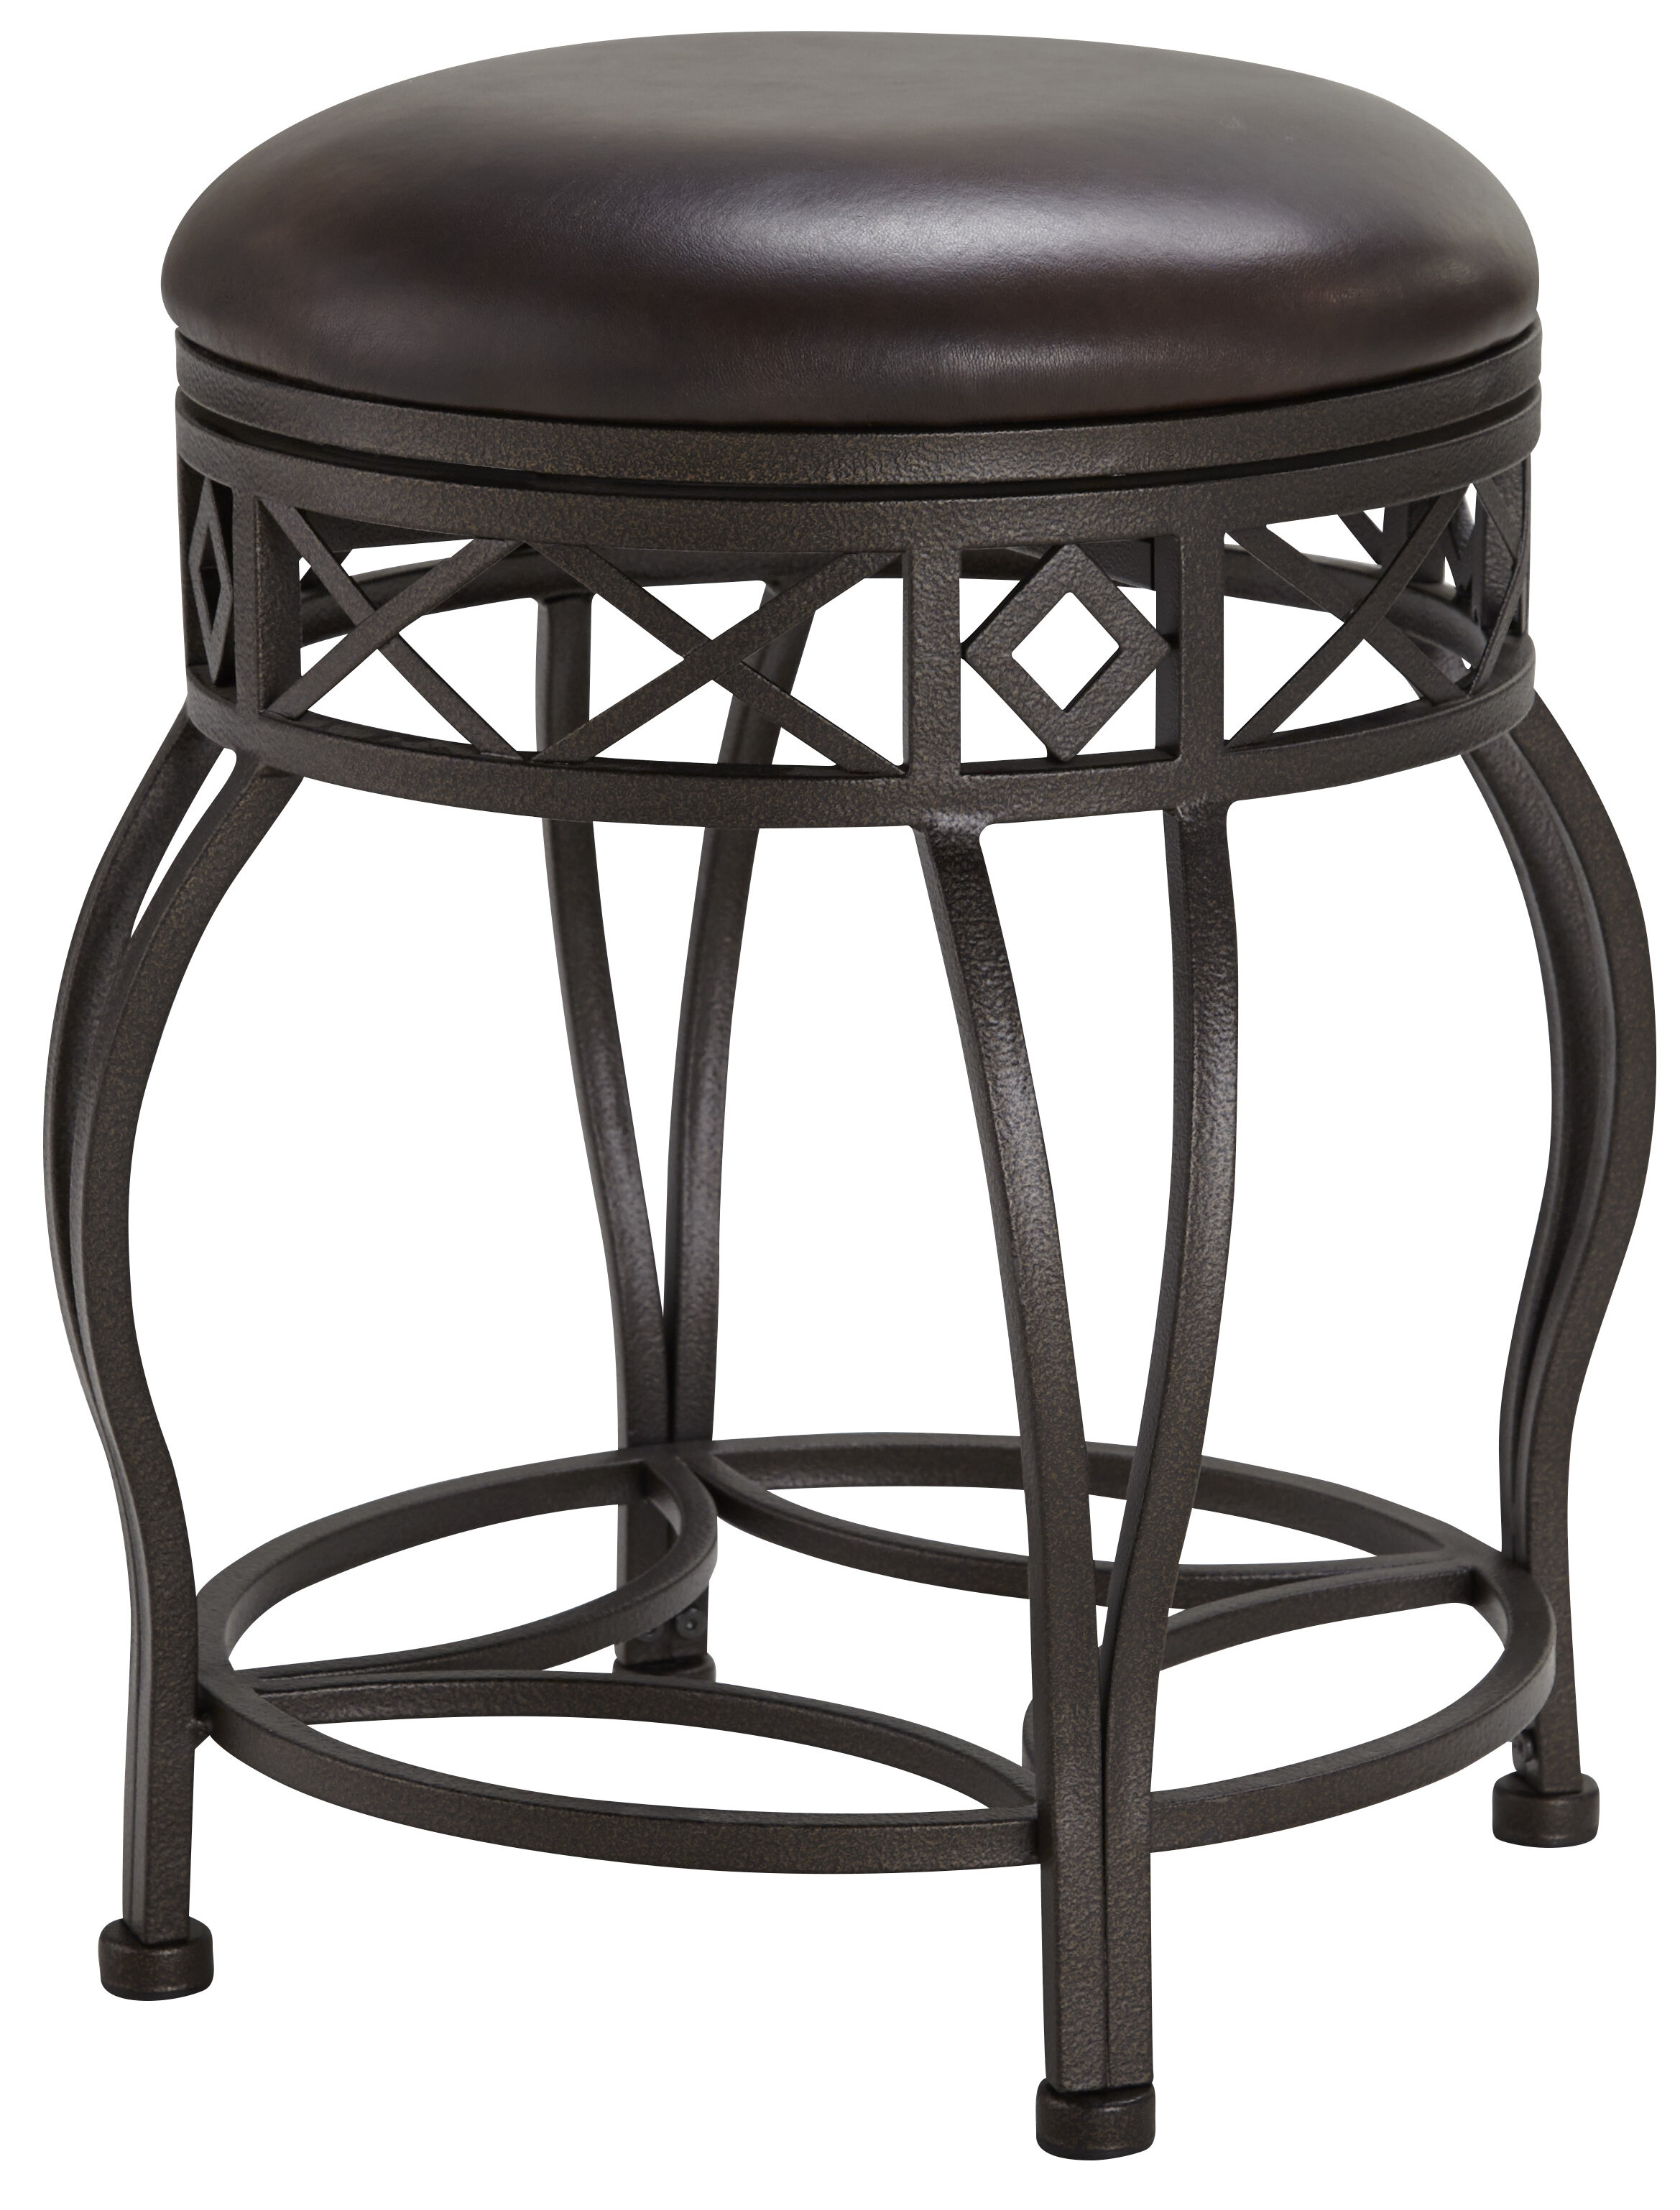 Wondrous Poteau Backless Metal Frame Adjustable Height Swivel Bar Stool Pabps2019 Chair Design Images Pabps2019Com